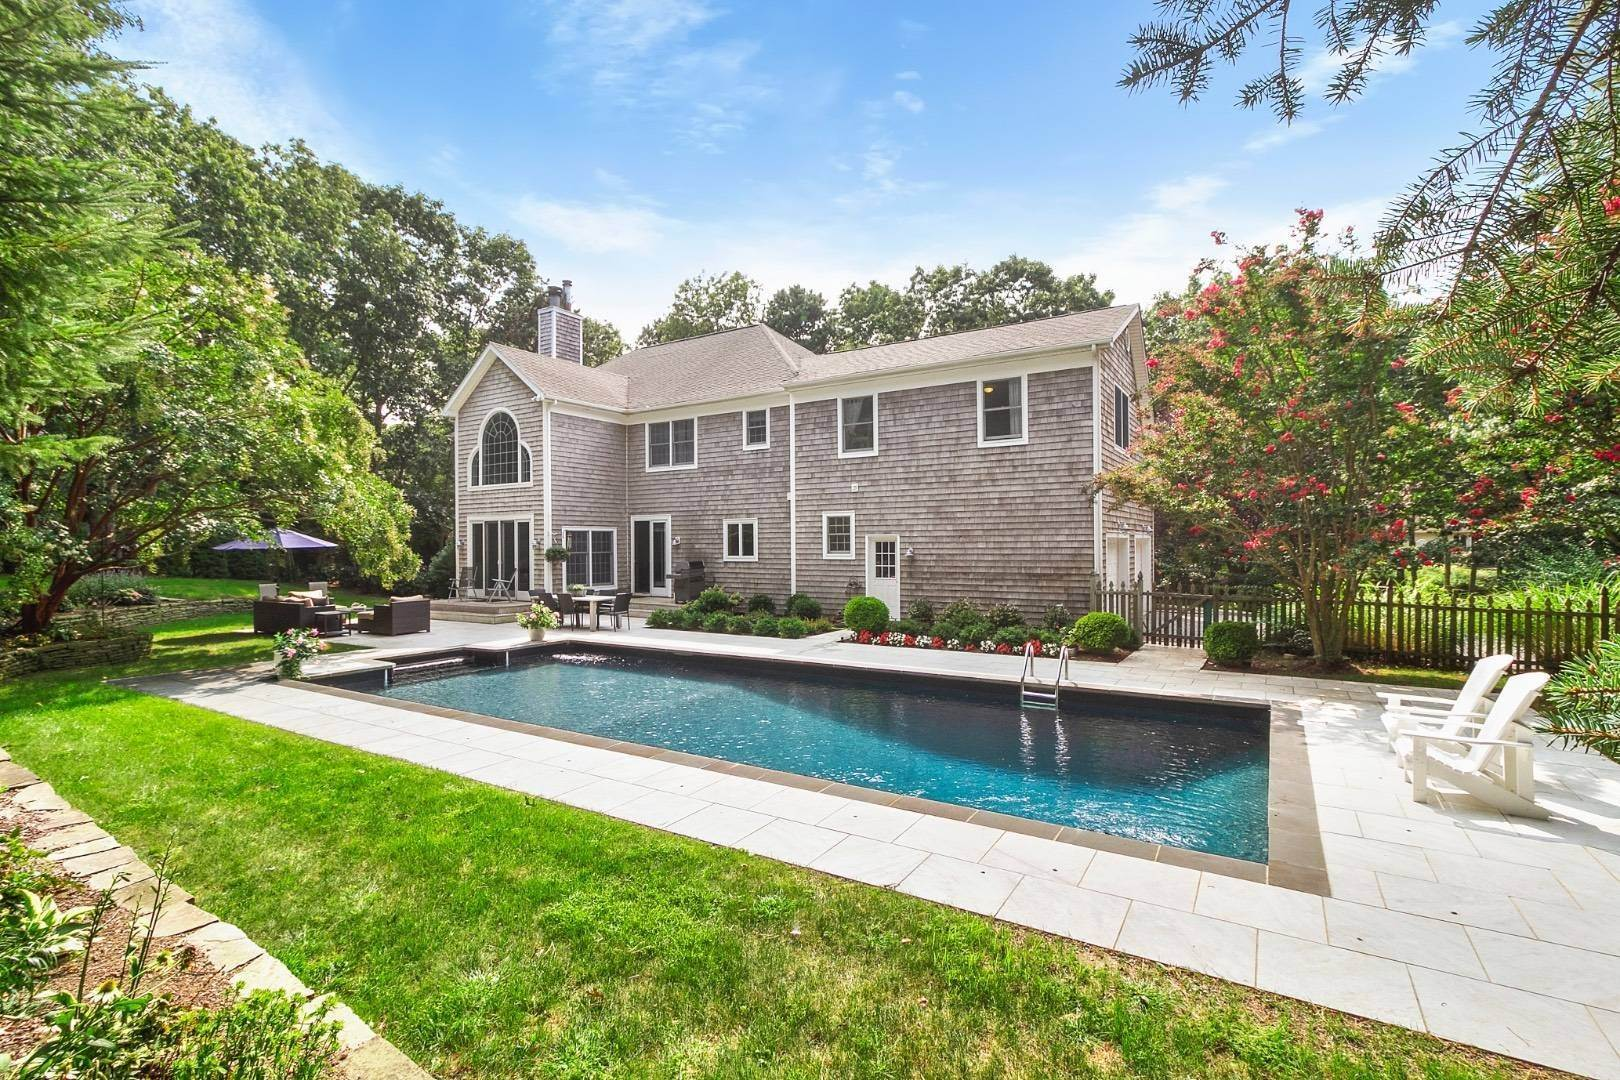 Single Family Home at Sag Harbor 4 Bedroom Home ~ Convenient To Everything Sag Harbor, NY 11963